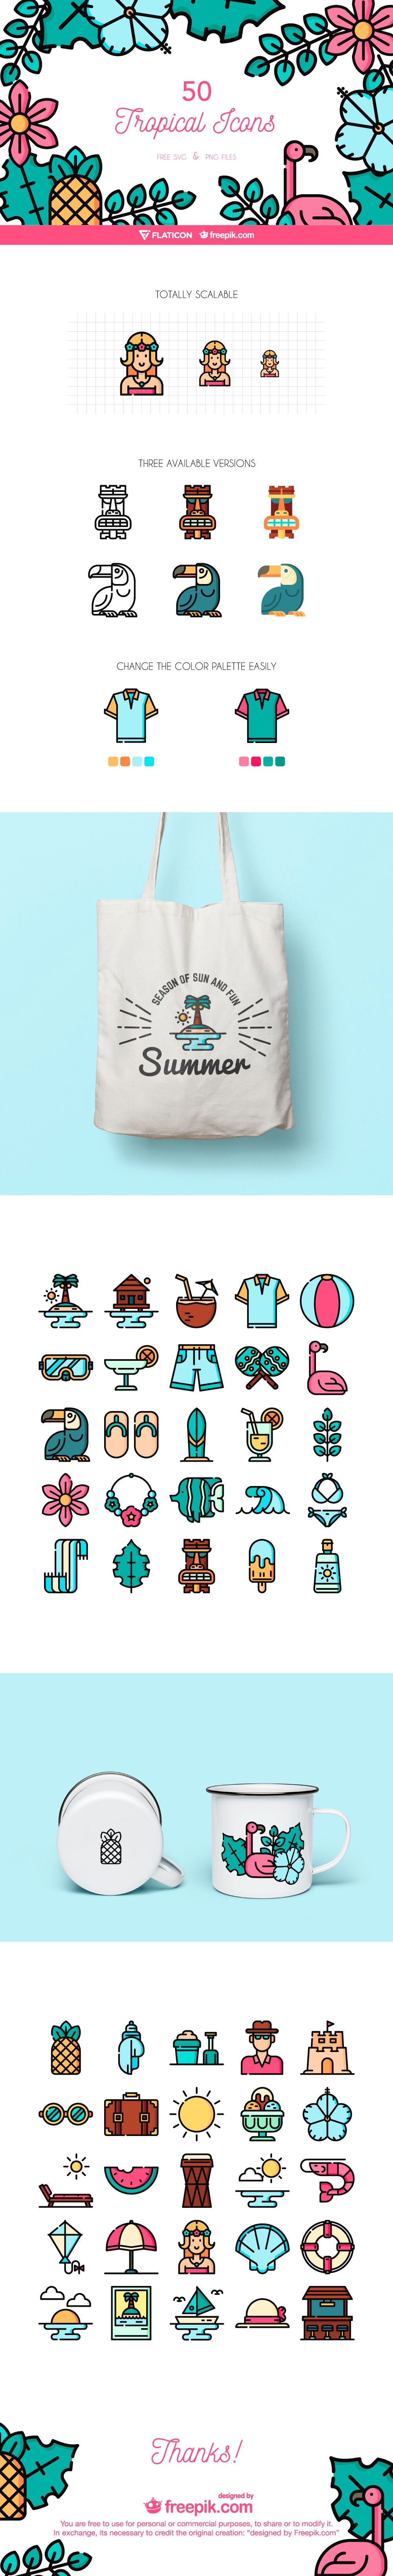 Tropical Icon Set - The Tropical Icon Set includes individual icons of palm trees, beach balls, cocktails, surfboards, waves, ice creams, bikinis, suntan lotions… everything you would expect to see and use on a warm tropical vacation.